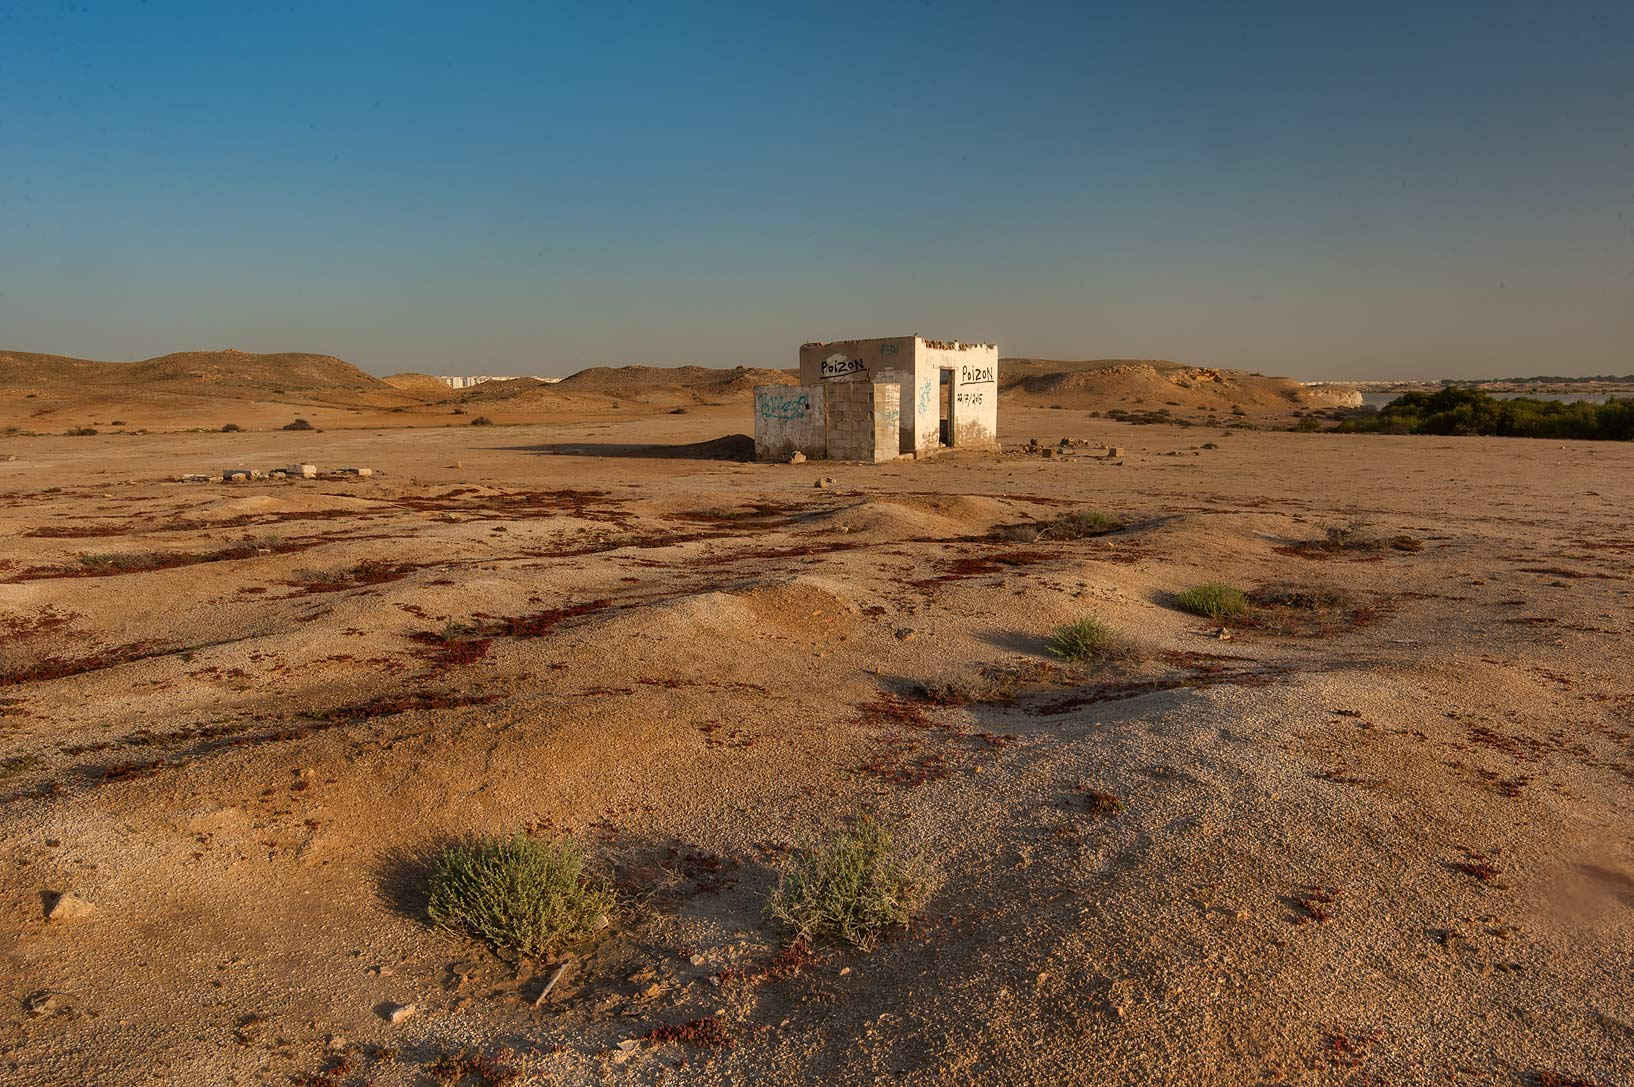 Remains of an excavation site (archeological dig...Jazirat Bin Ghanim). Al Khor, Qatar